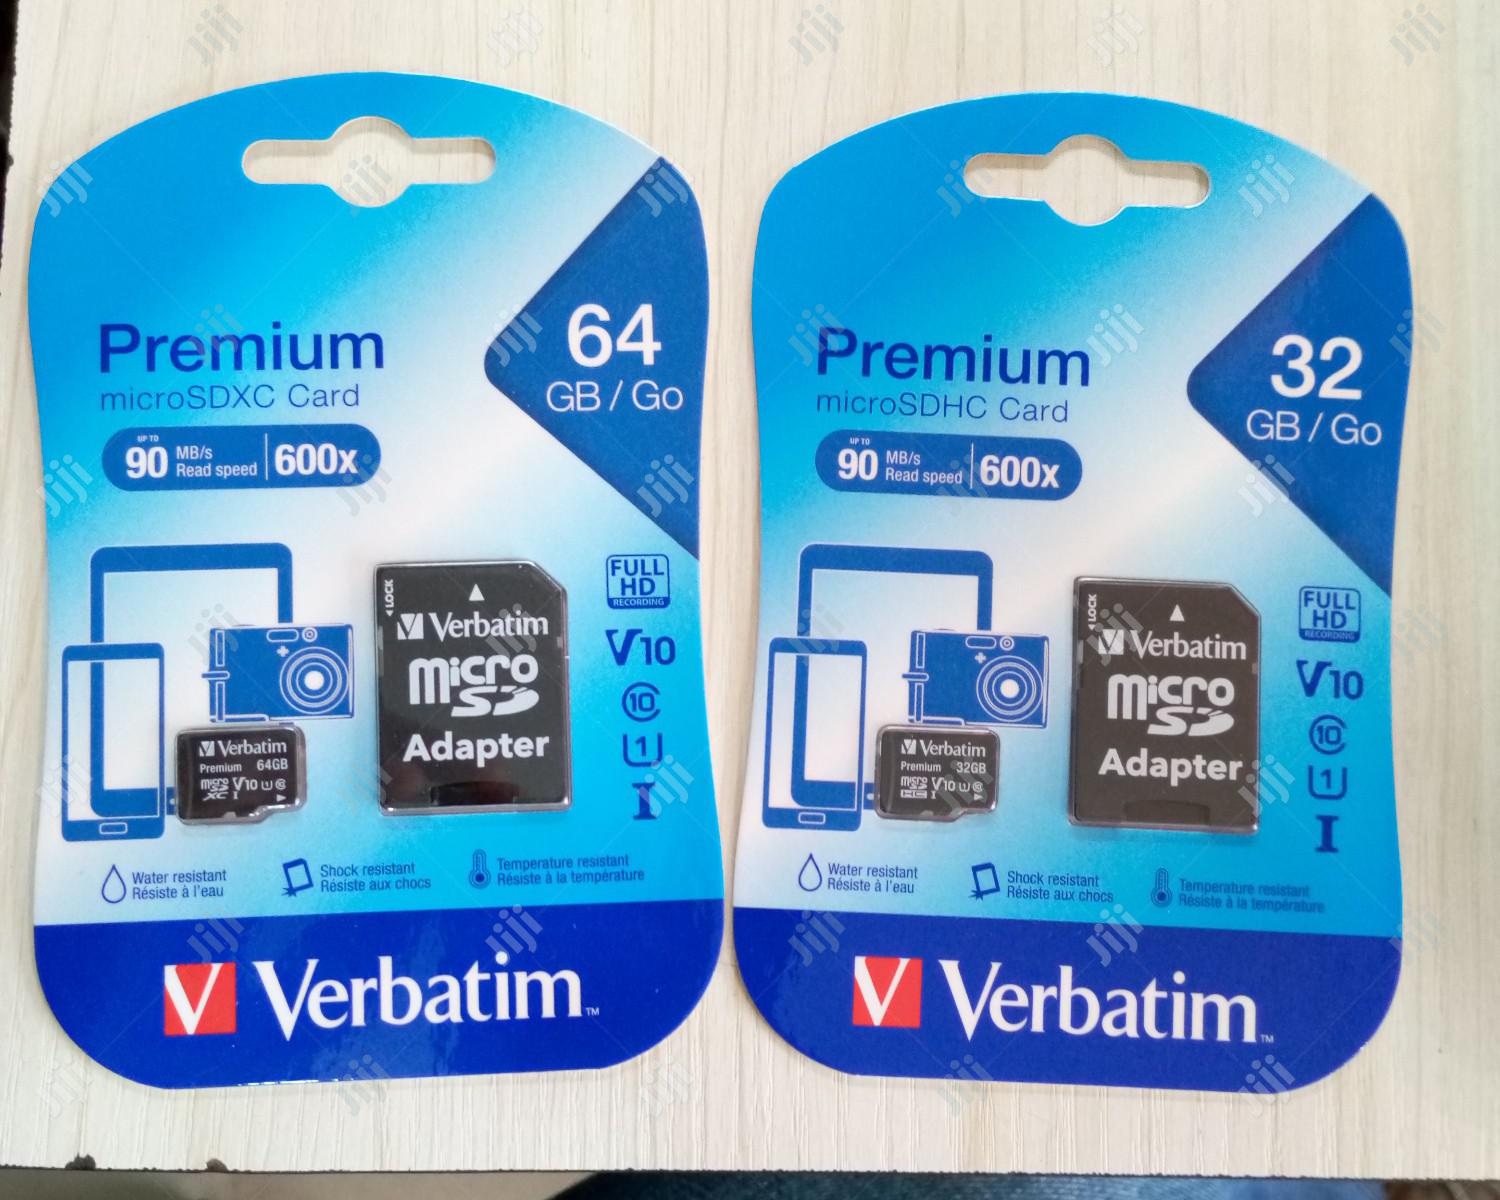 Verbatim Flash Drive And Phone Memory Card 32GB & 64GB | Accessories for Mobile Phones & Tablets for sale in Lagos State, Nigeria